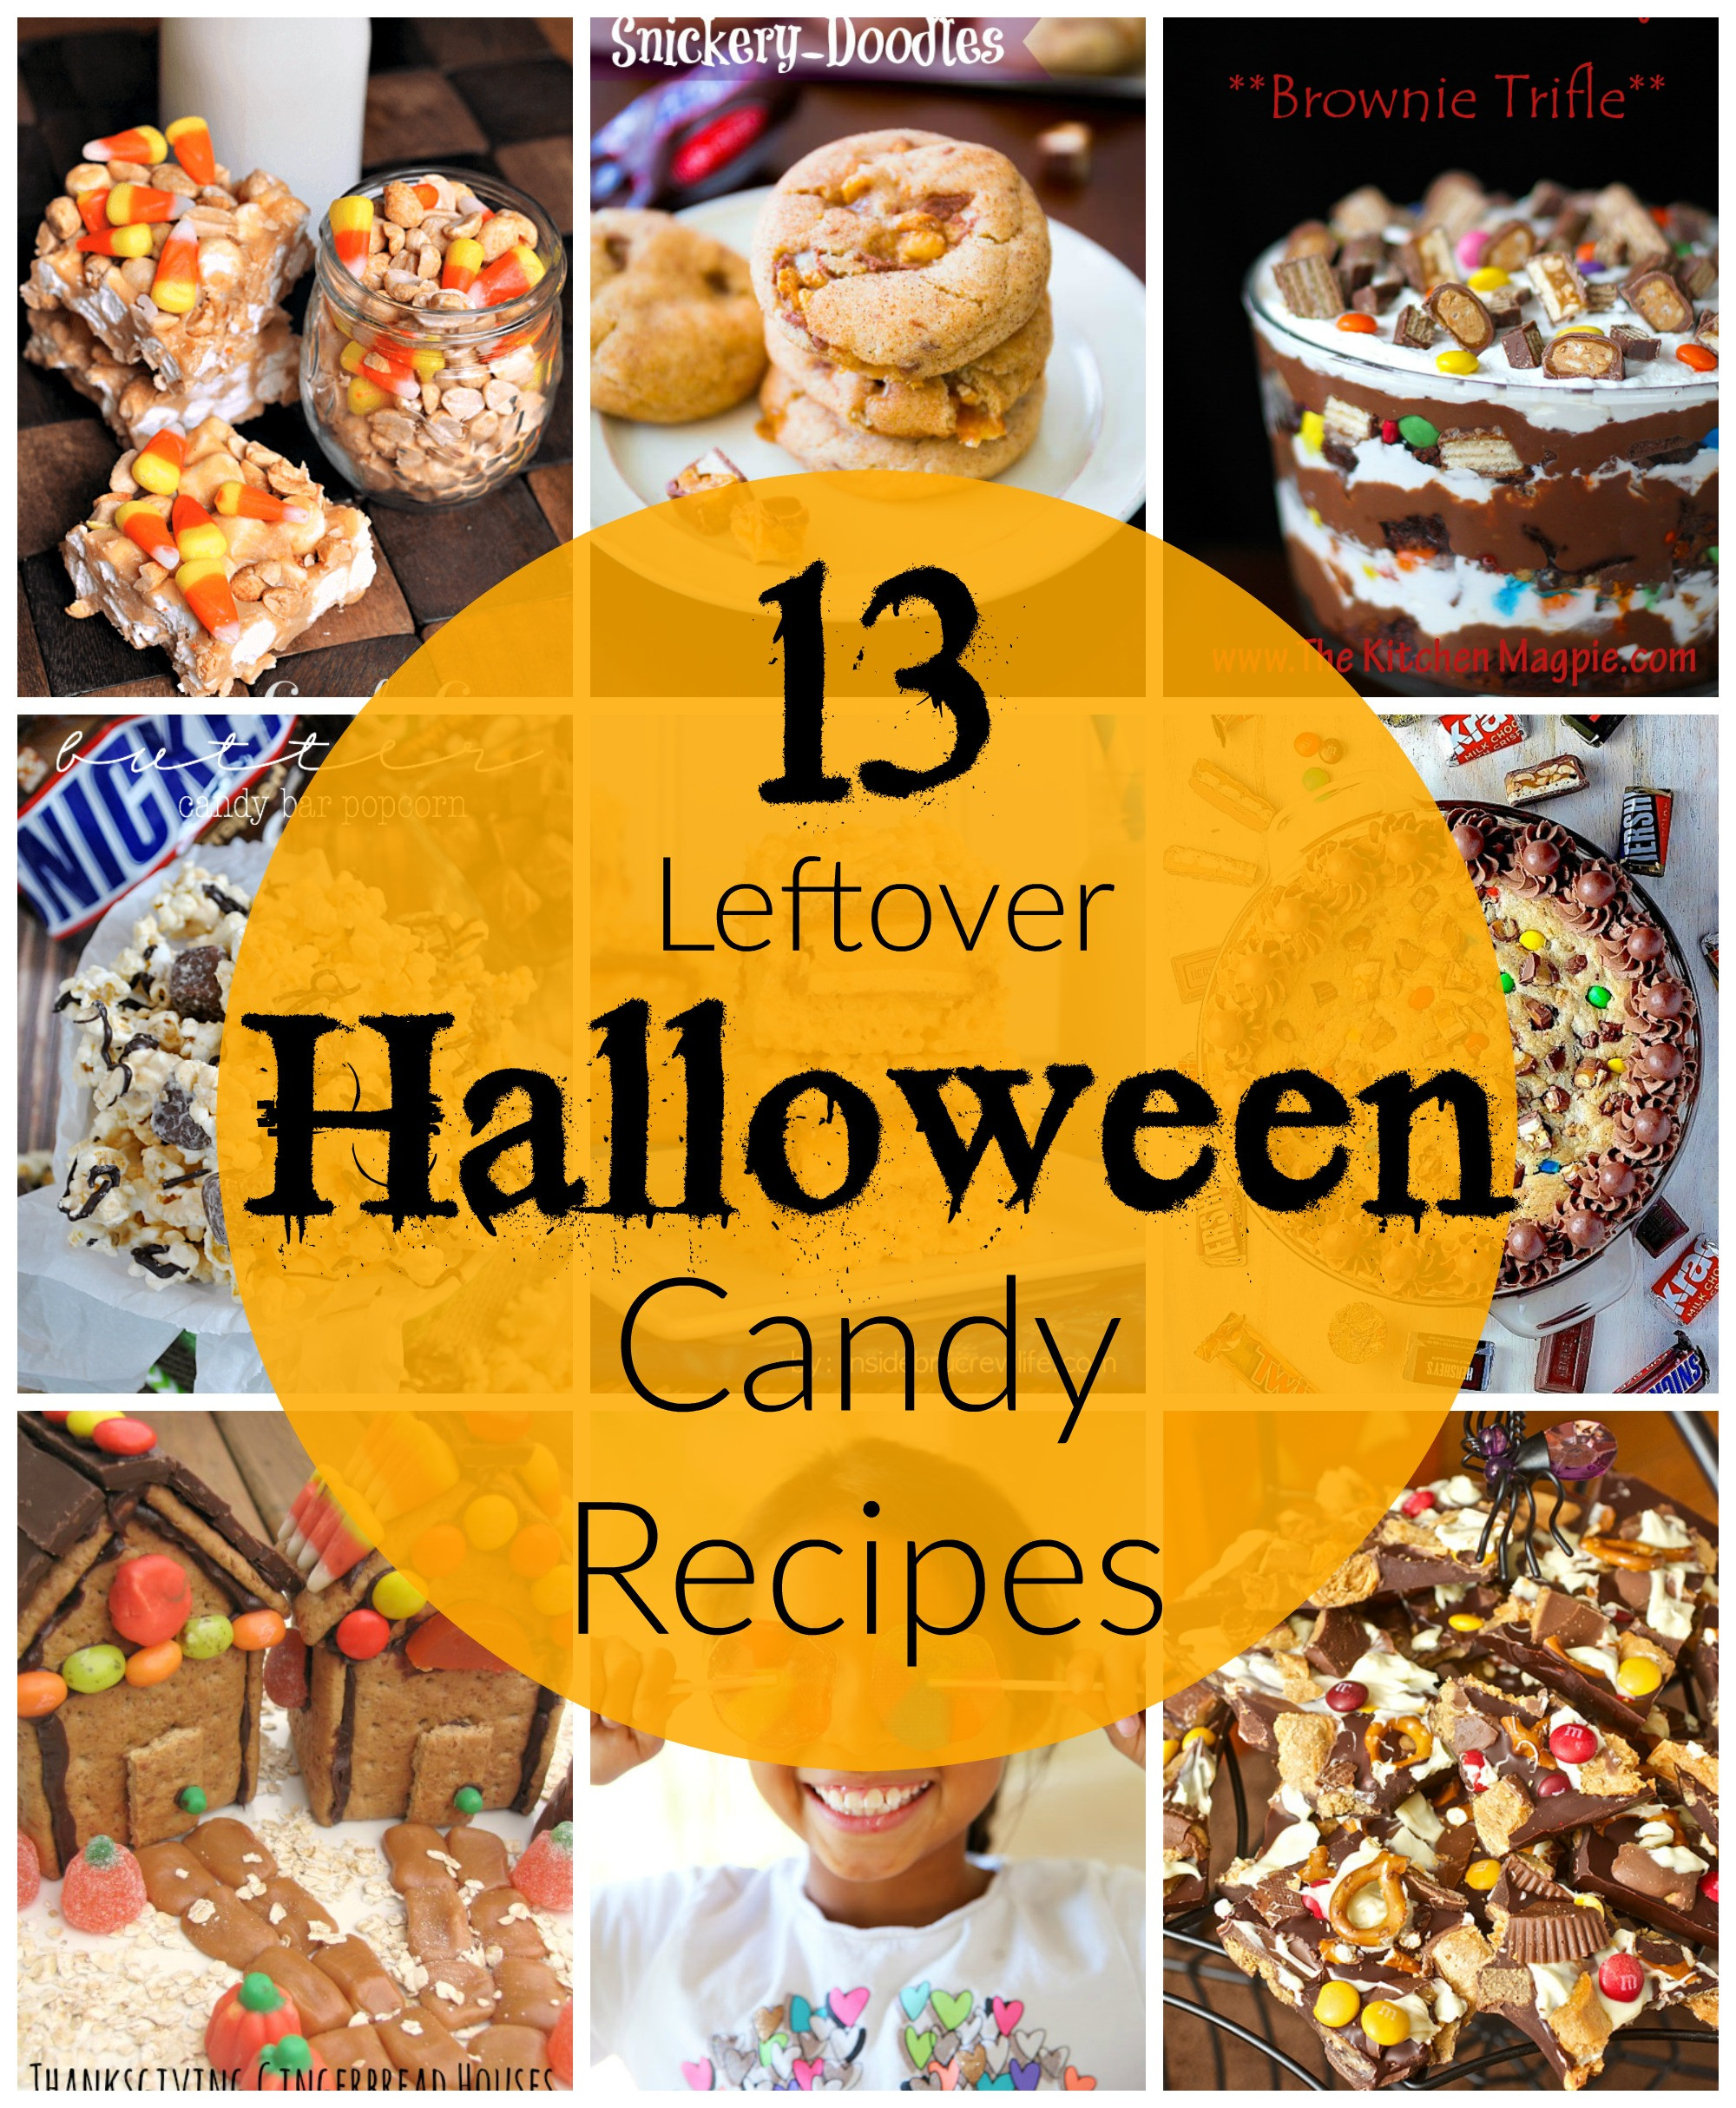 Leftover Halloween Candy Recipes  13 Leftover Halloween Candy Recipes